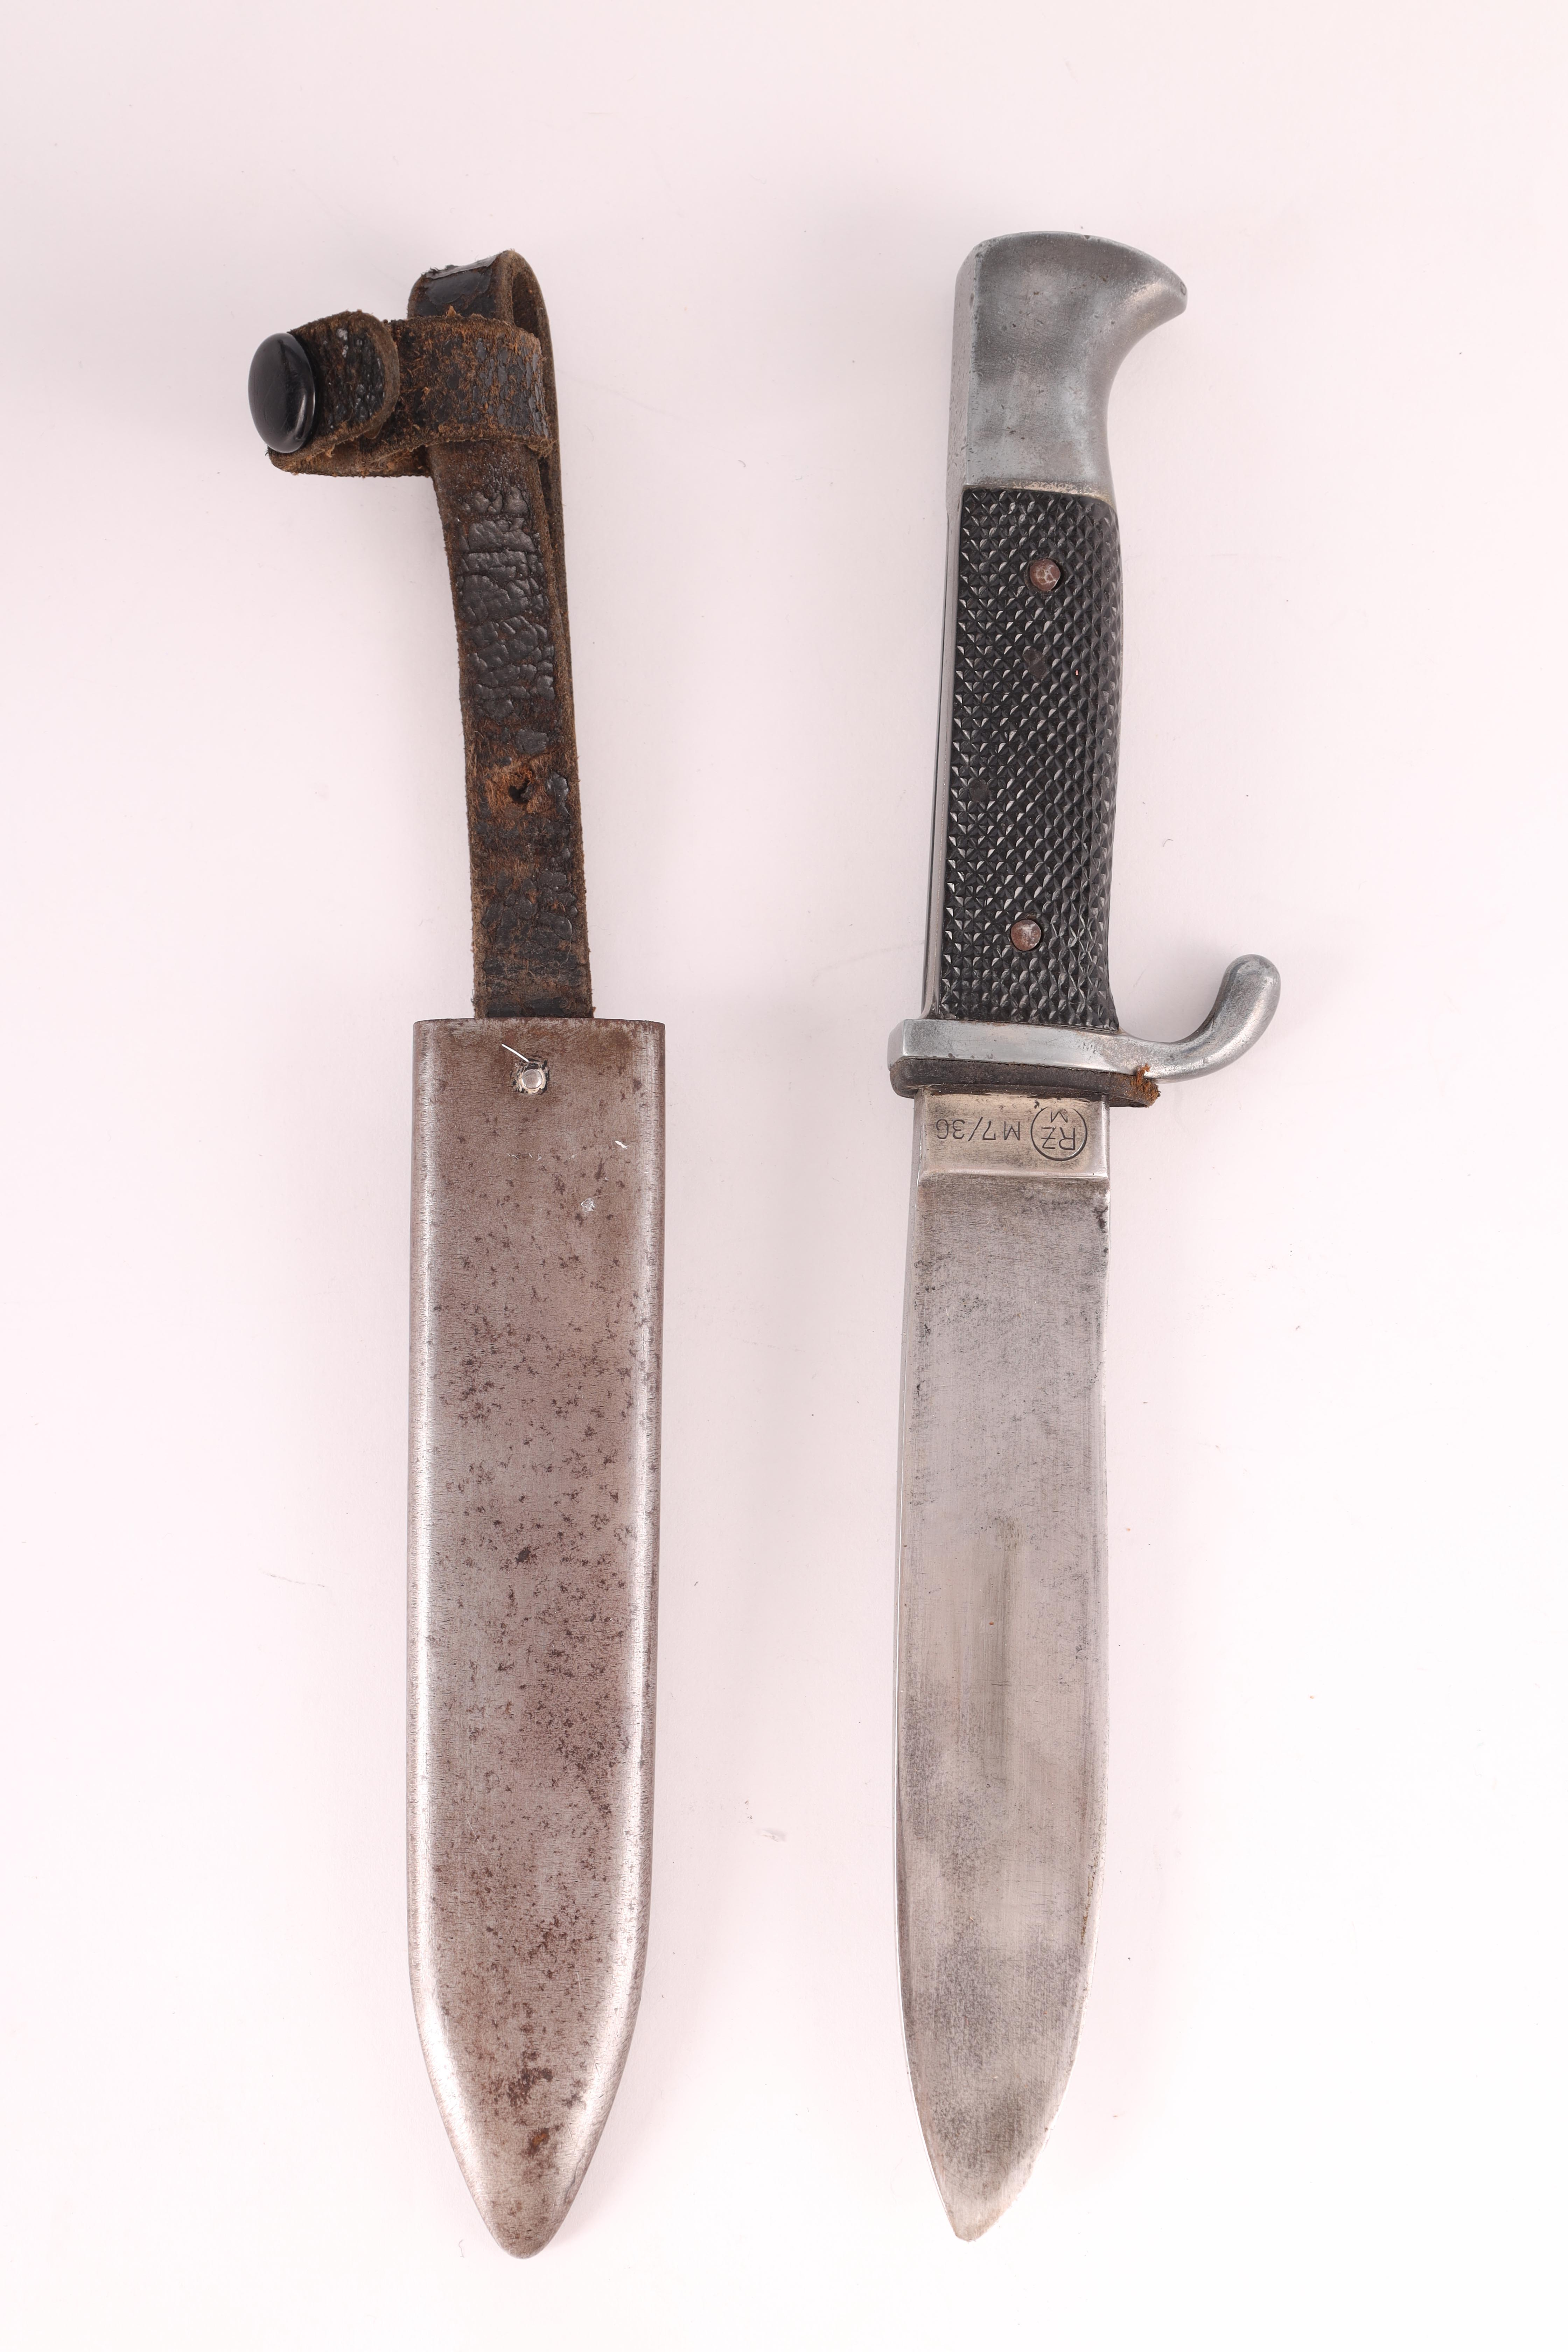 A WORLD WAR II GERMAN NAZI HITLER YOUTH DAGGER with checkered grip set with an enamel swastika - Image 5 of 7